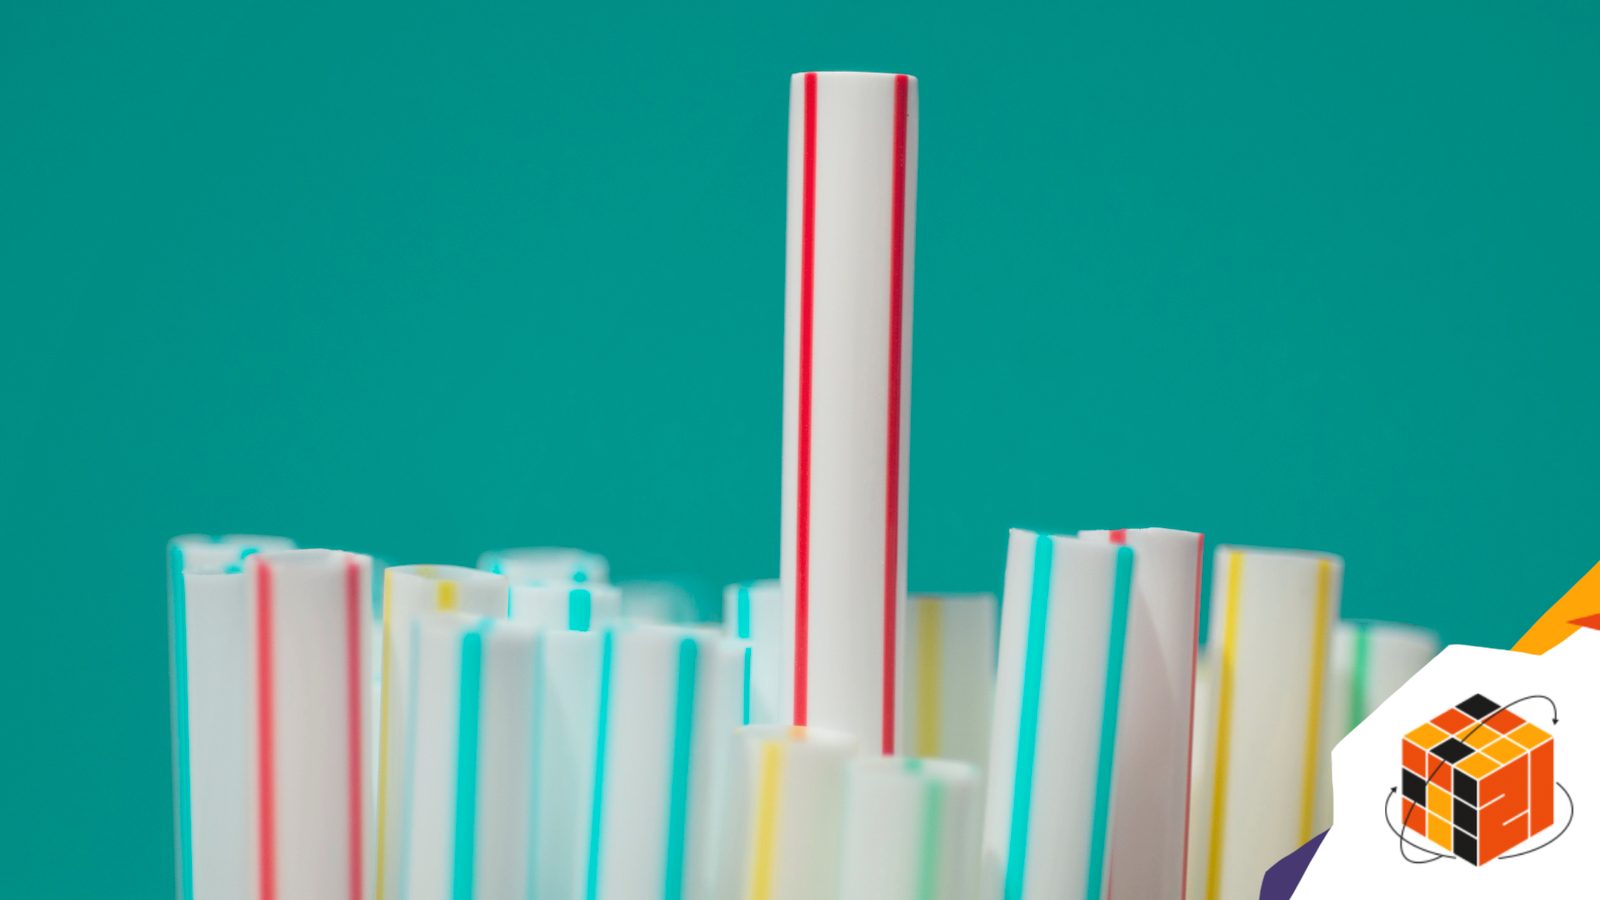 Group of STRAWS with one sticking up in the middle, objects being BANNED by some countries.